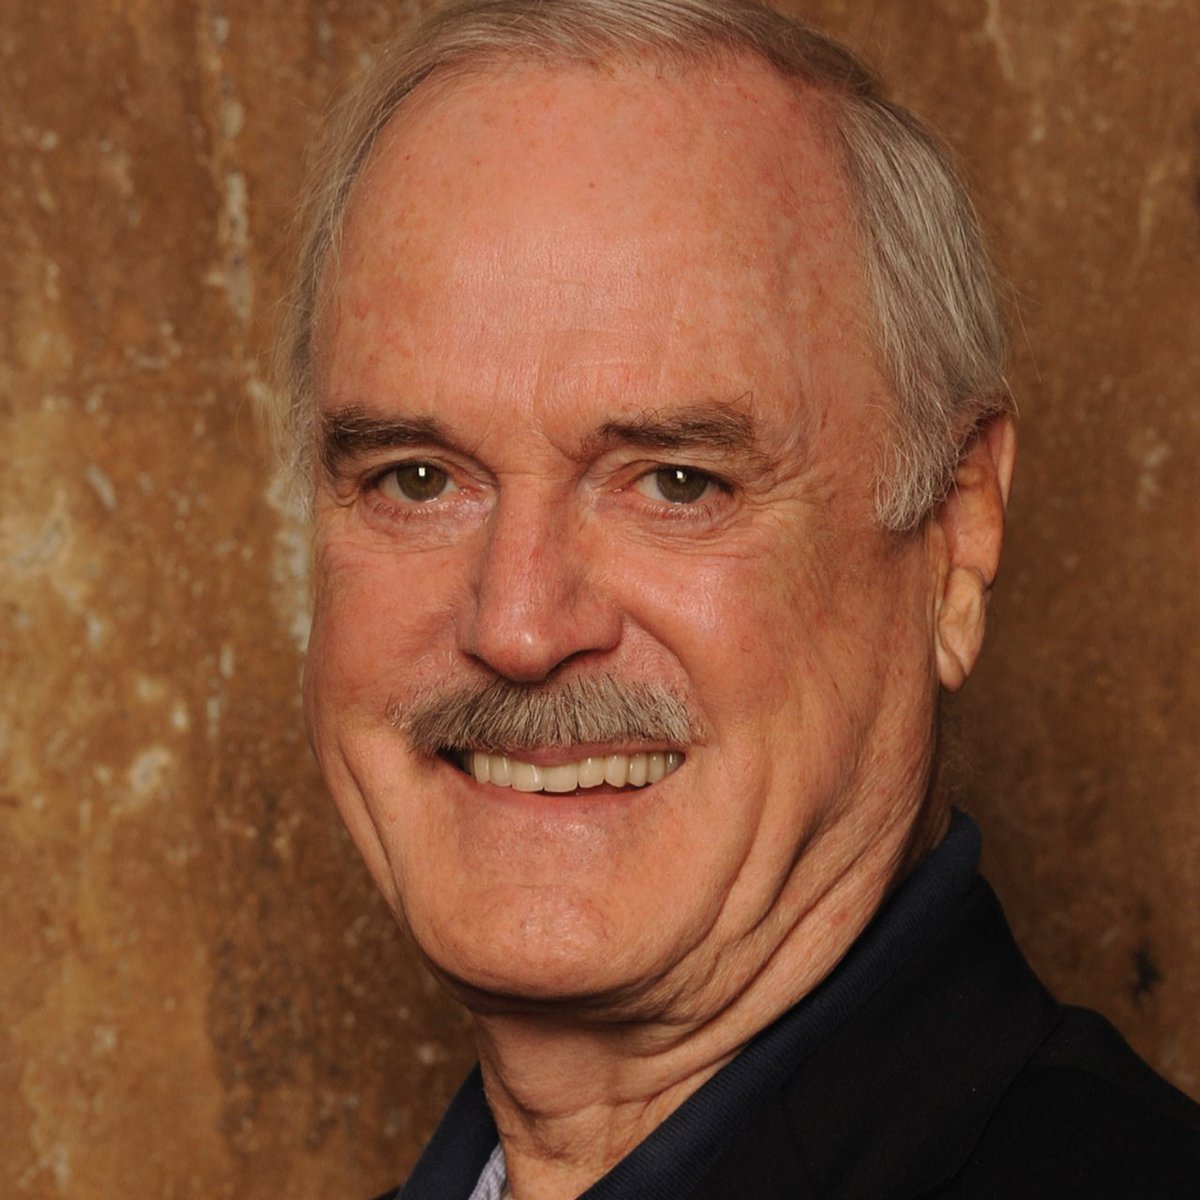 #TBay #thunderbay do you have your @JohnCleese tickets yet for the show on Nov 8 @The_Auditorium.  If not buy them!